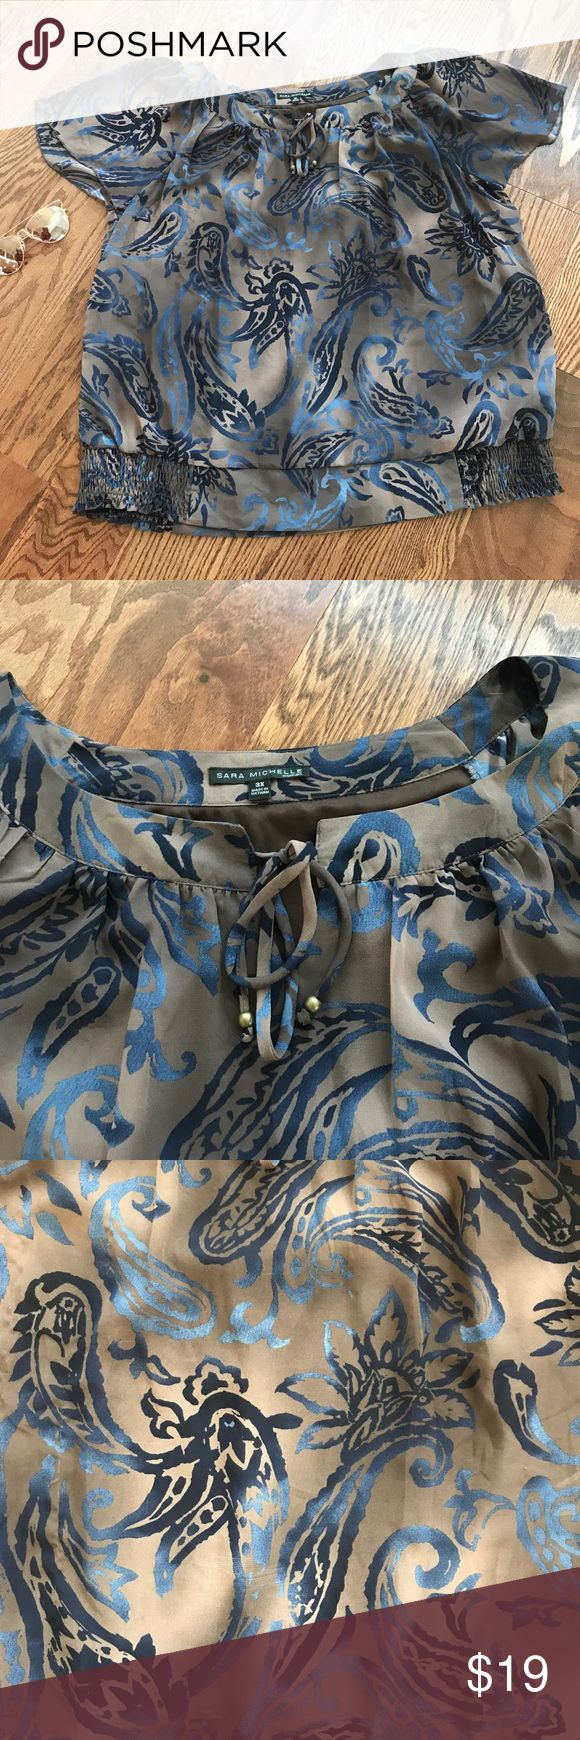 """Like new Sara Michelle blouse ! Pre-Owned. Great Condition. No Stains, Snags or Holes. Pet & Smoke-Free Home.  Brand: Sara Michelle Size: 3X Size Type: Plus Color: Brown, Tan, Blue Sleeve Style: Short Sleeve Measurements: Bust 54"""", Waist 54"""", Hips 58"""", Length 31"""" sara michelle Tops Blouses"""